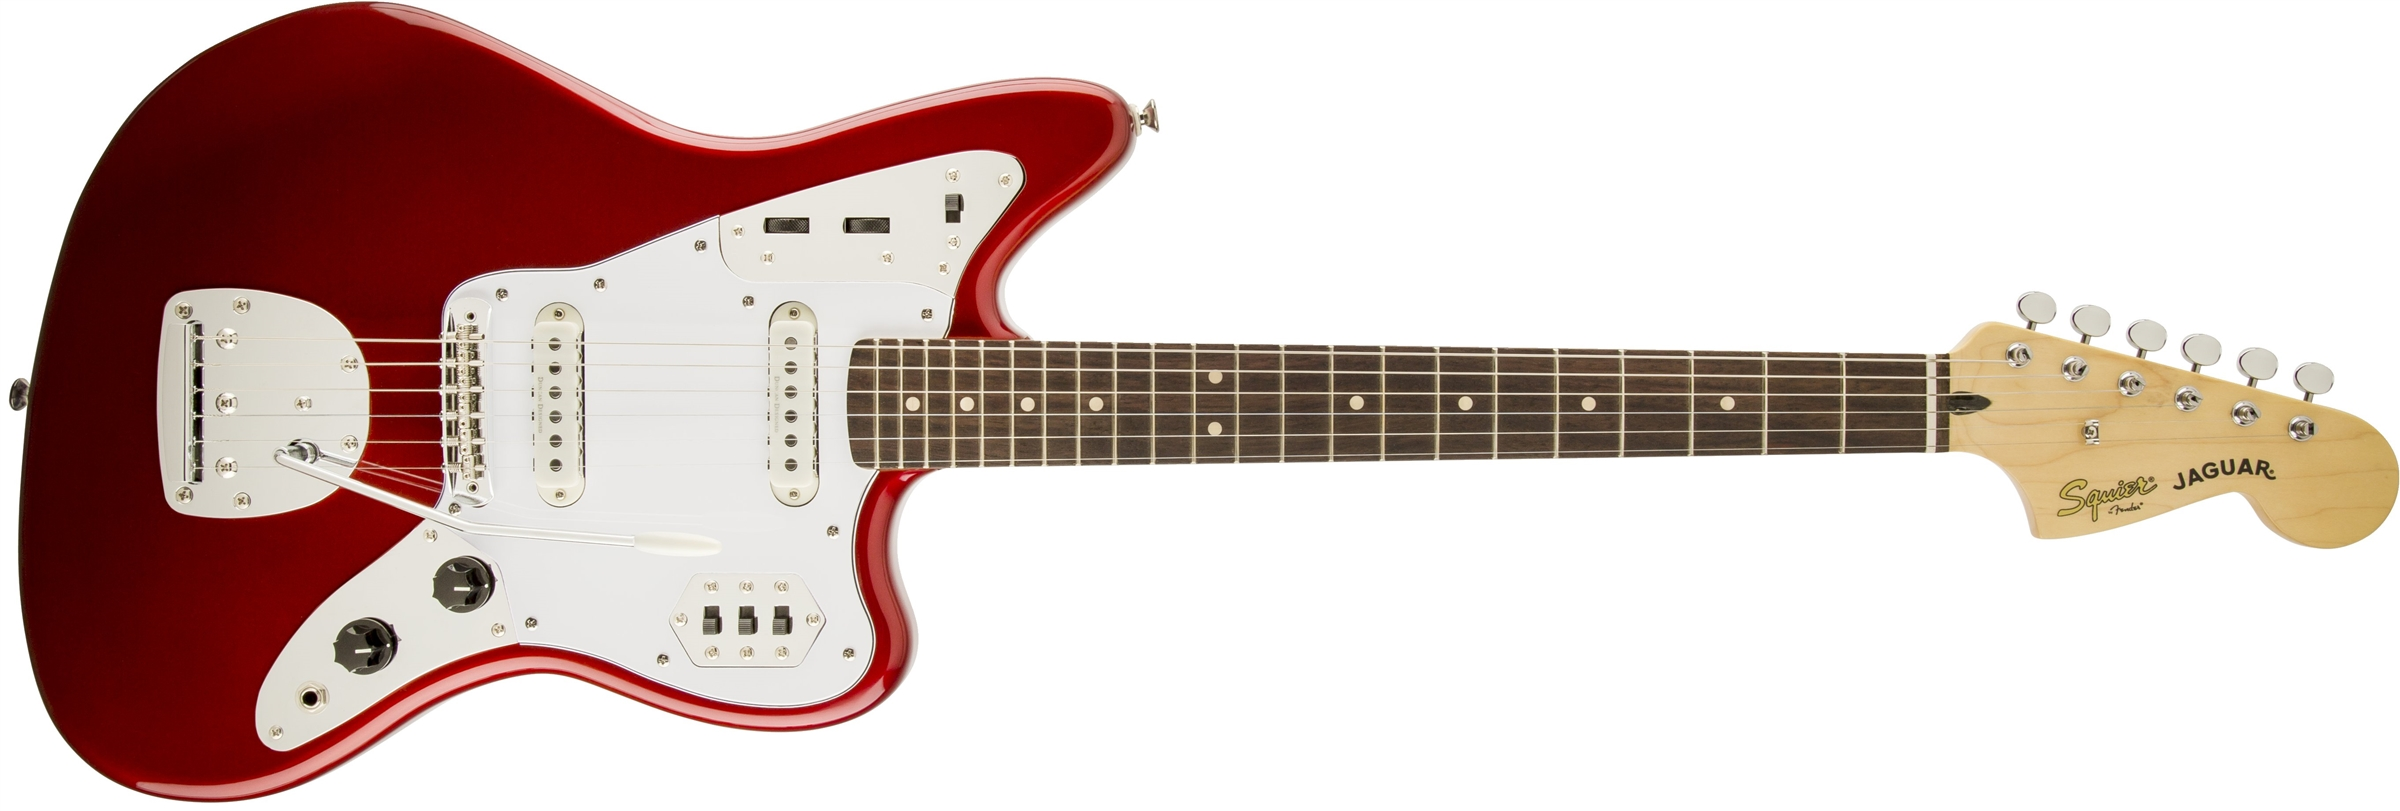 squier vintage modified jaguar rosewood fingerboard candy apple. Cars Review. Best American Auto & Cars Review